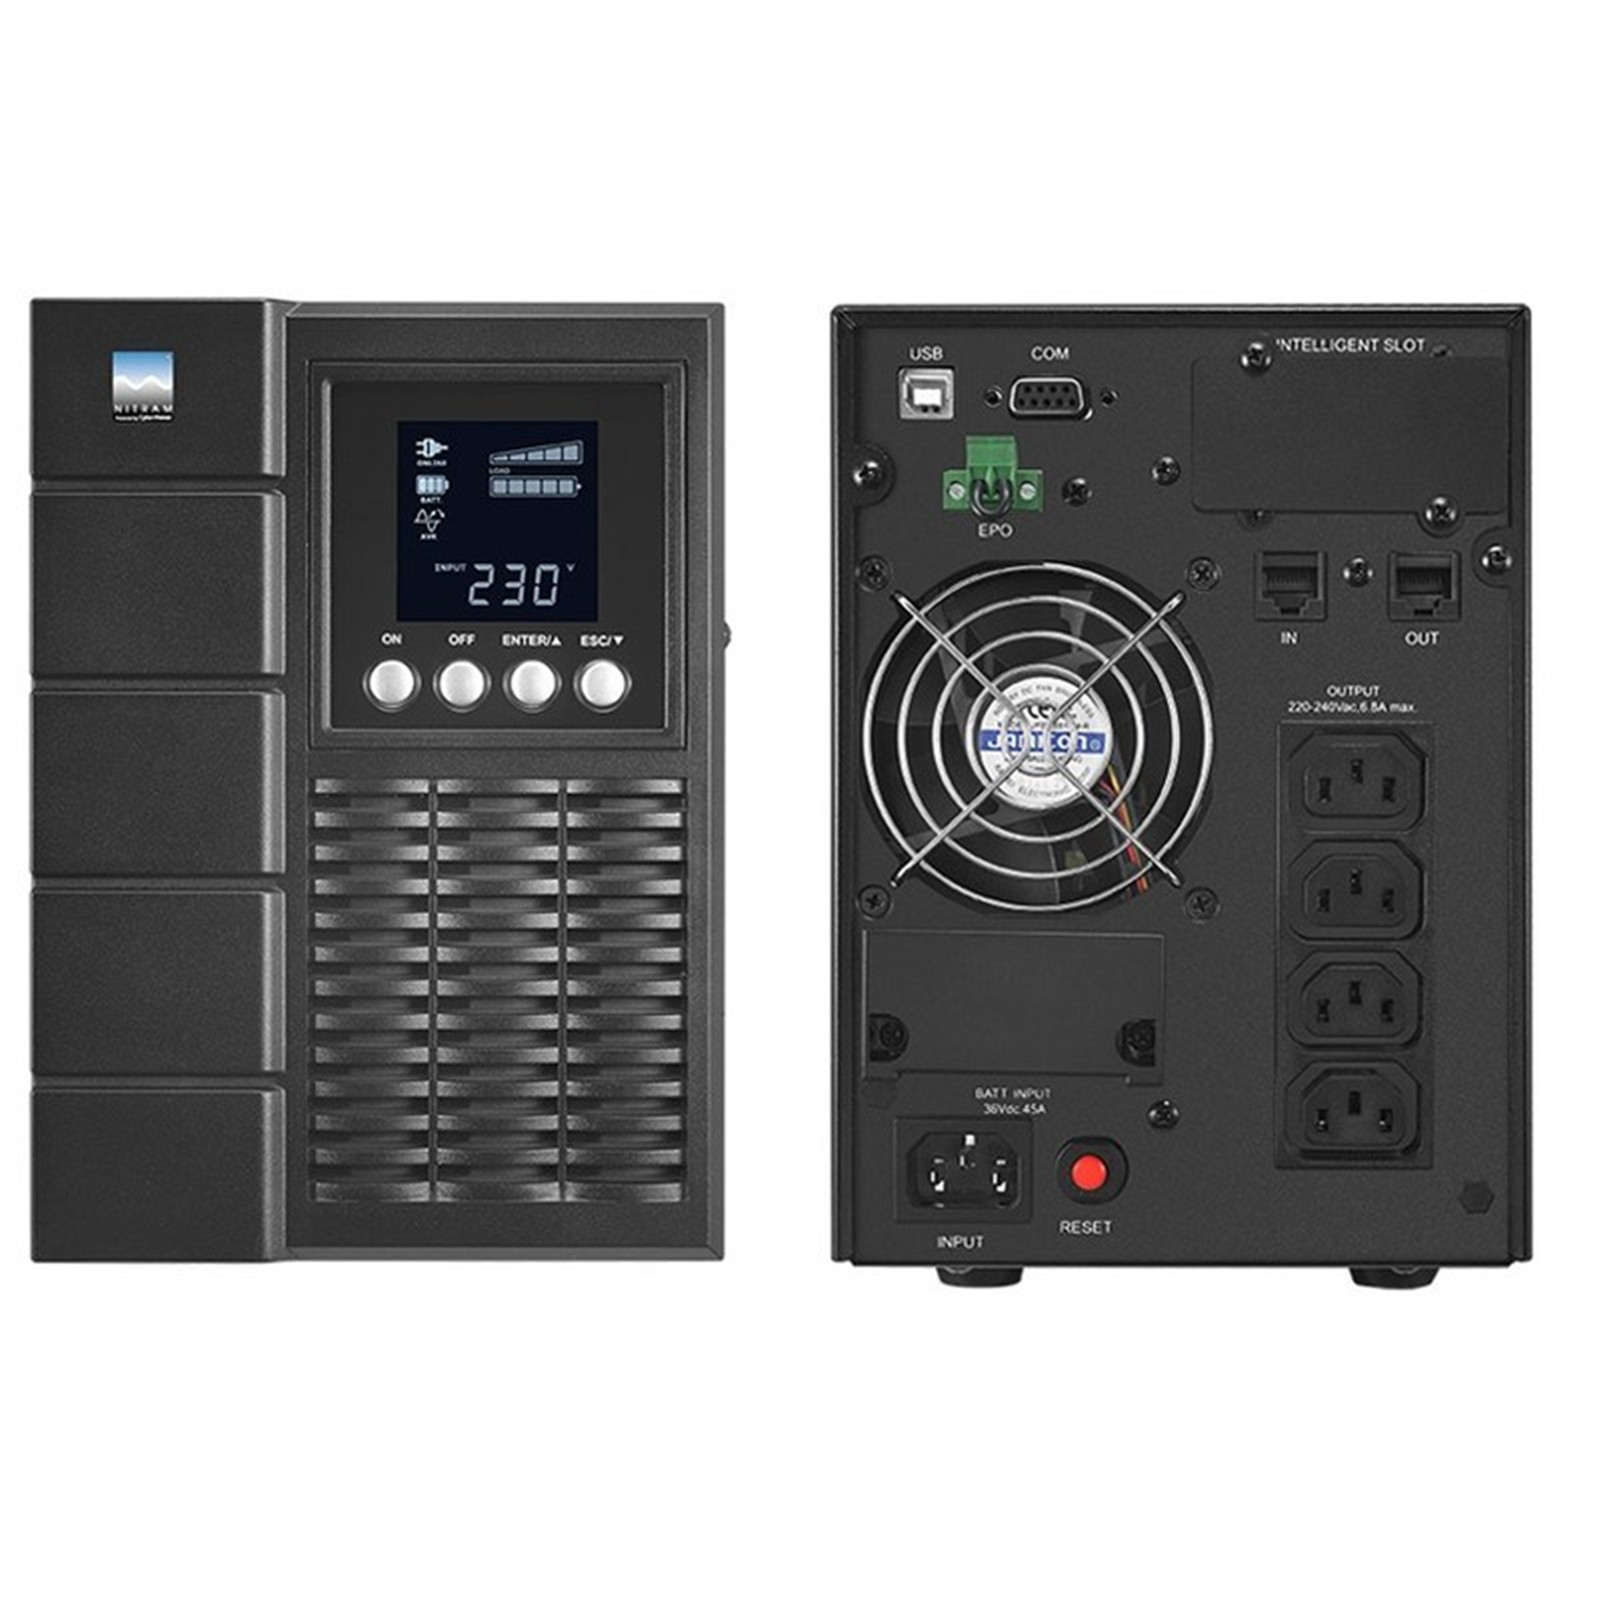 Buy the CyberPower OLS1000E 1000VA/800W On-Line Tower UPS